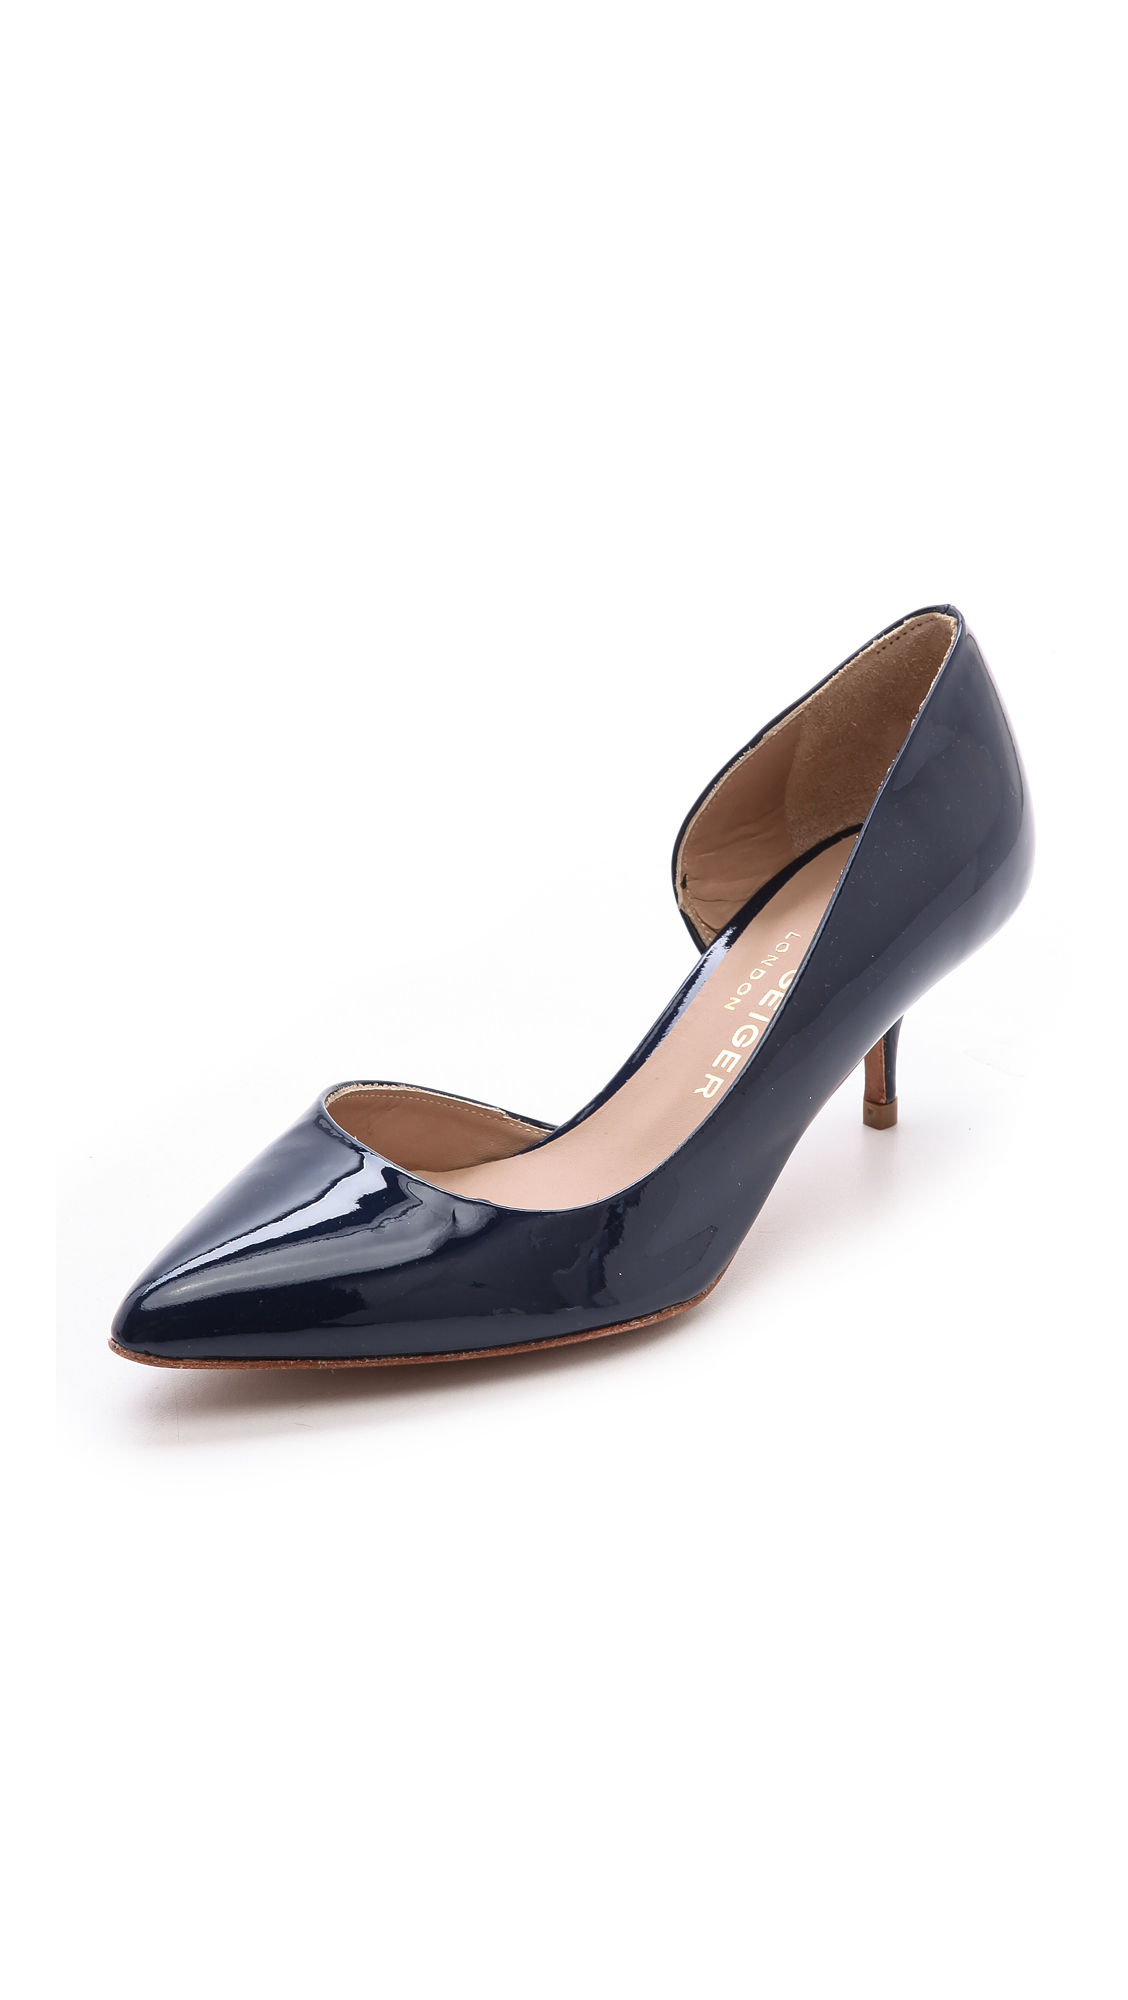 Kurt geiger Tilia Kitten Heel Pumps Navy in Blue | Lyst